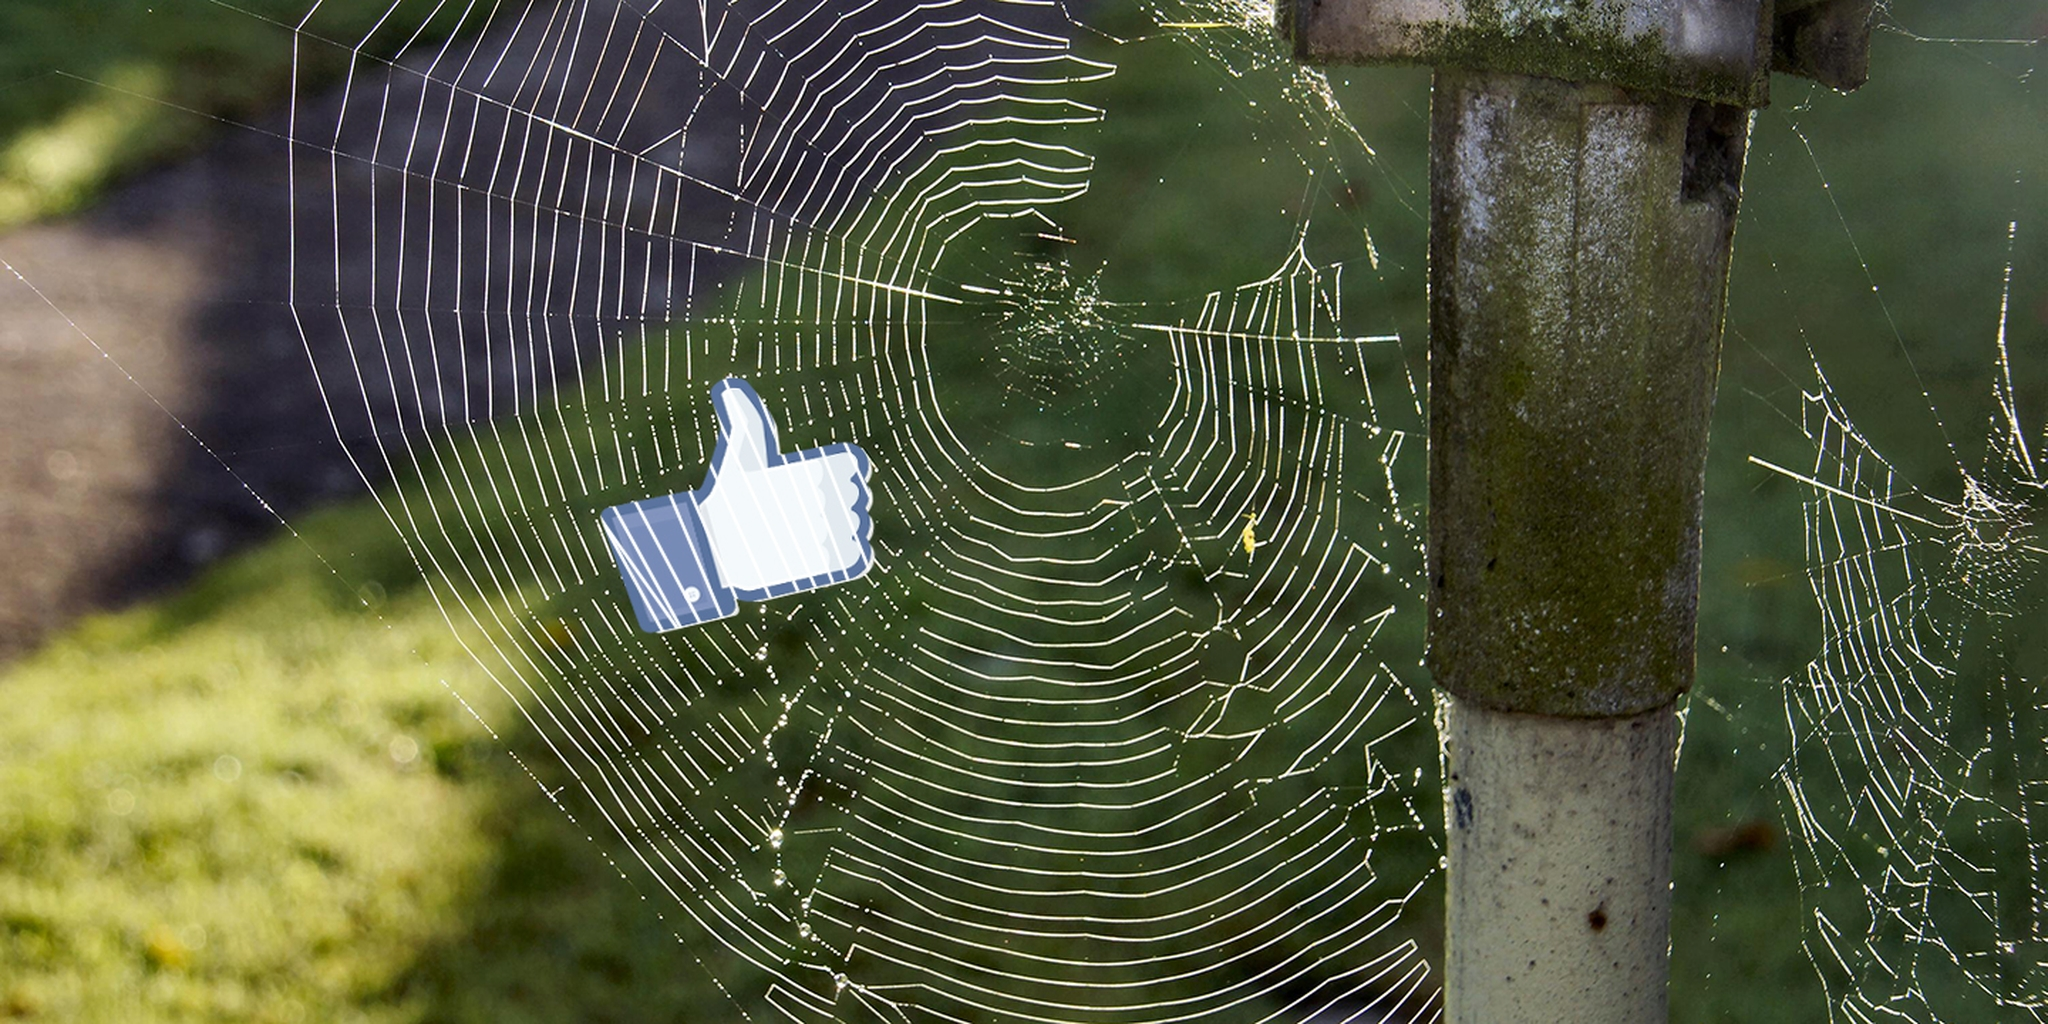 fb-spiderweb.jpg (1440×720)